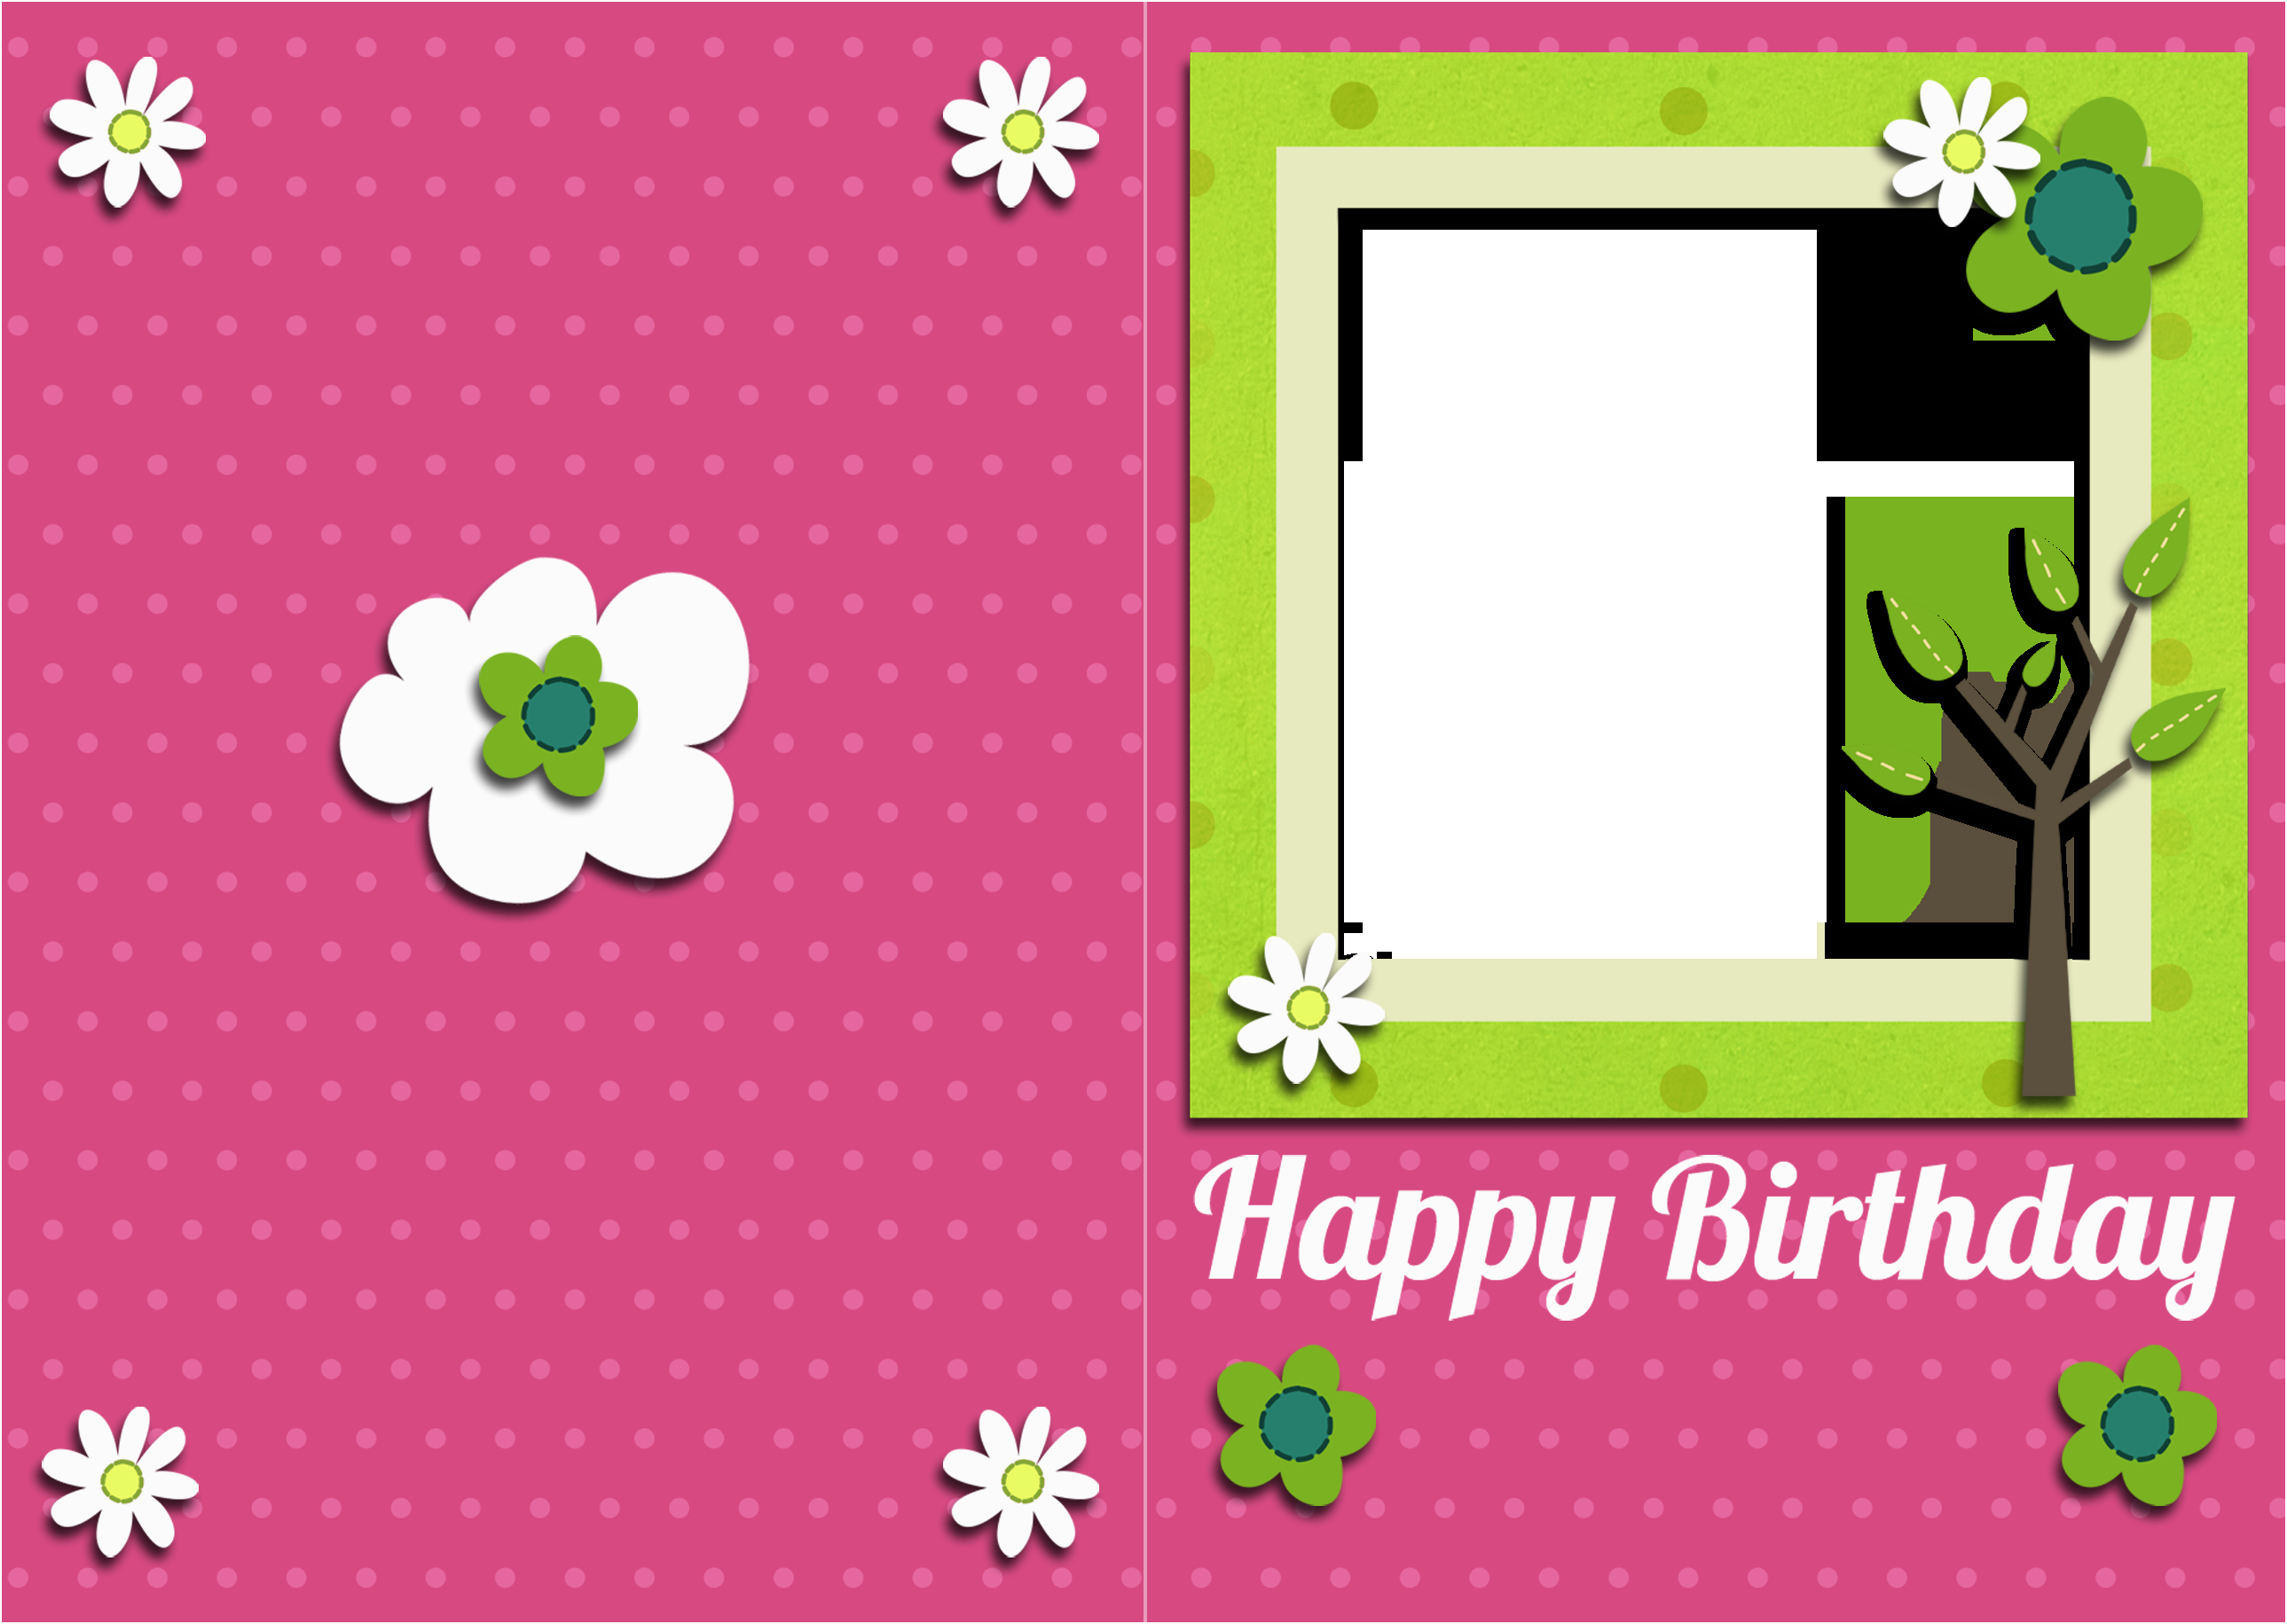 Create Birthday Card Online with Name Create Birthday Card Online with Name 101 Birthdays